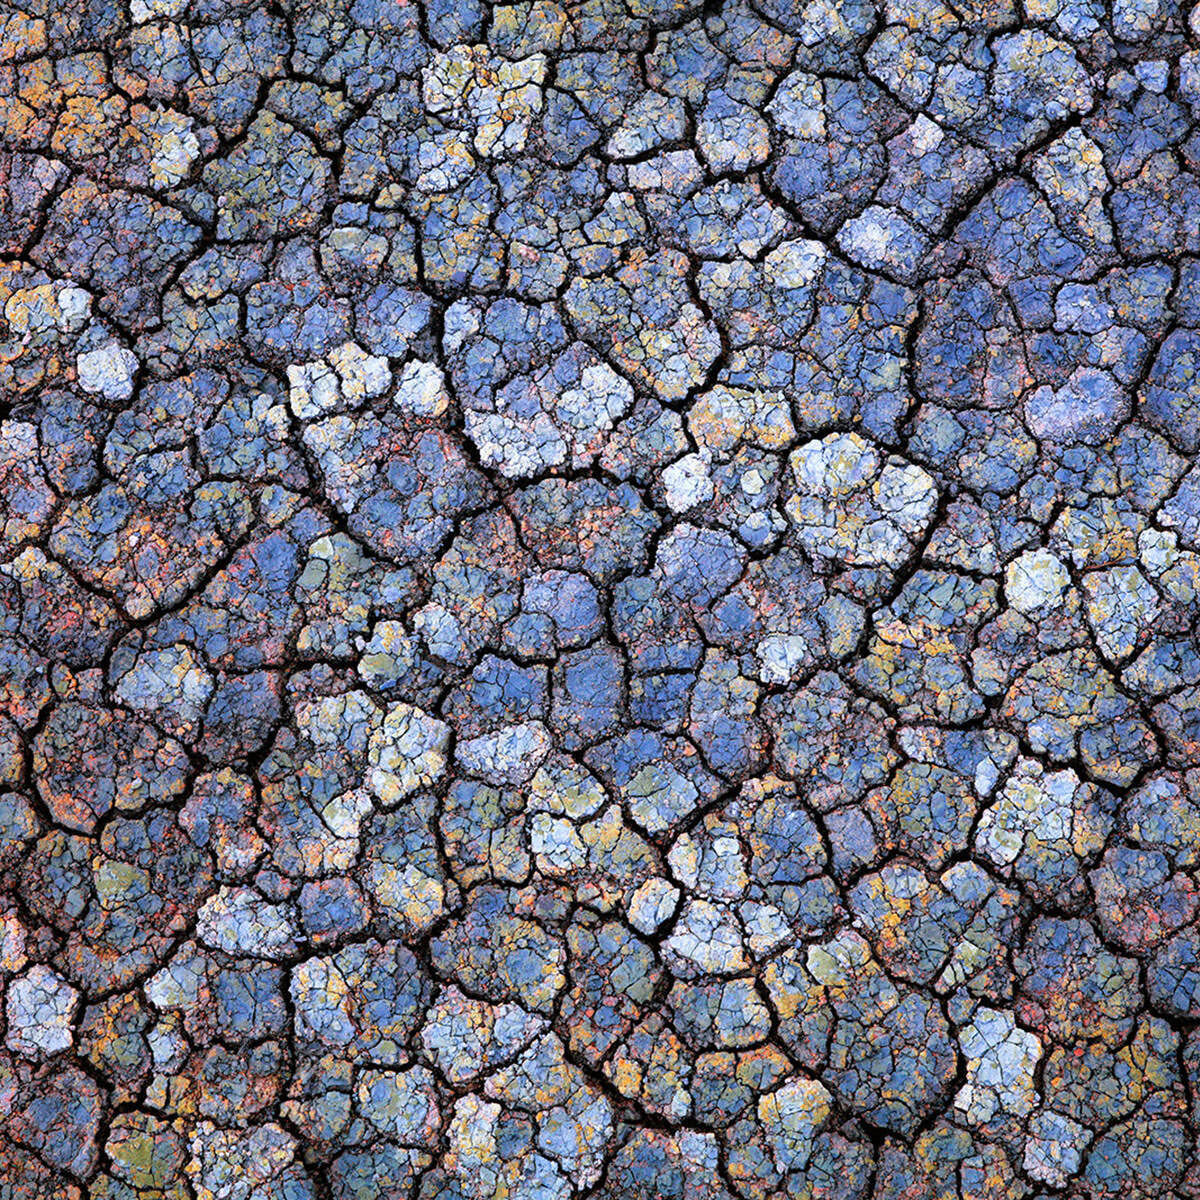 A photograph of colorful details found in geothermal mud in Iceland titled Infinite Worlds.